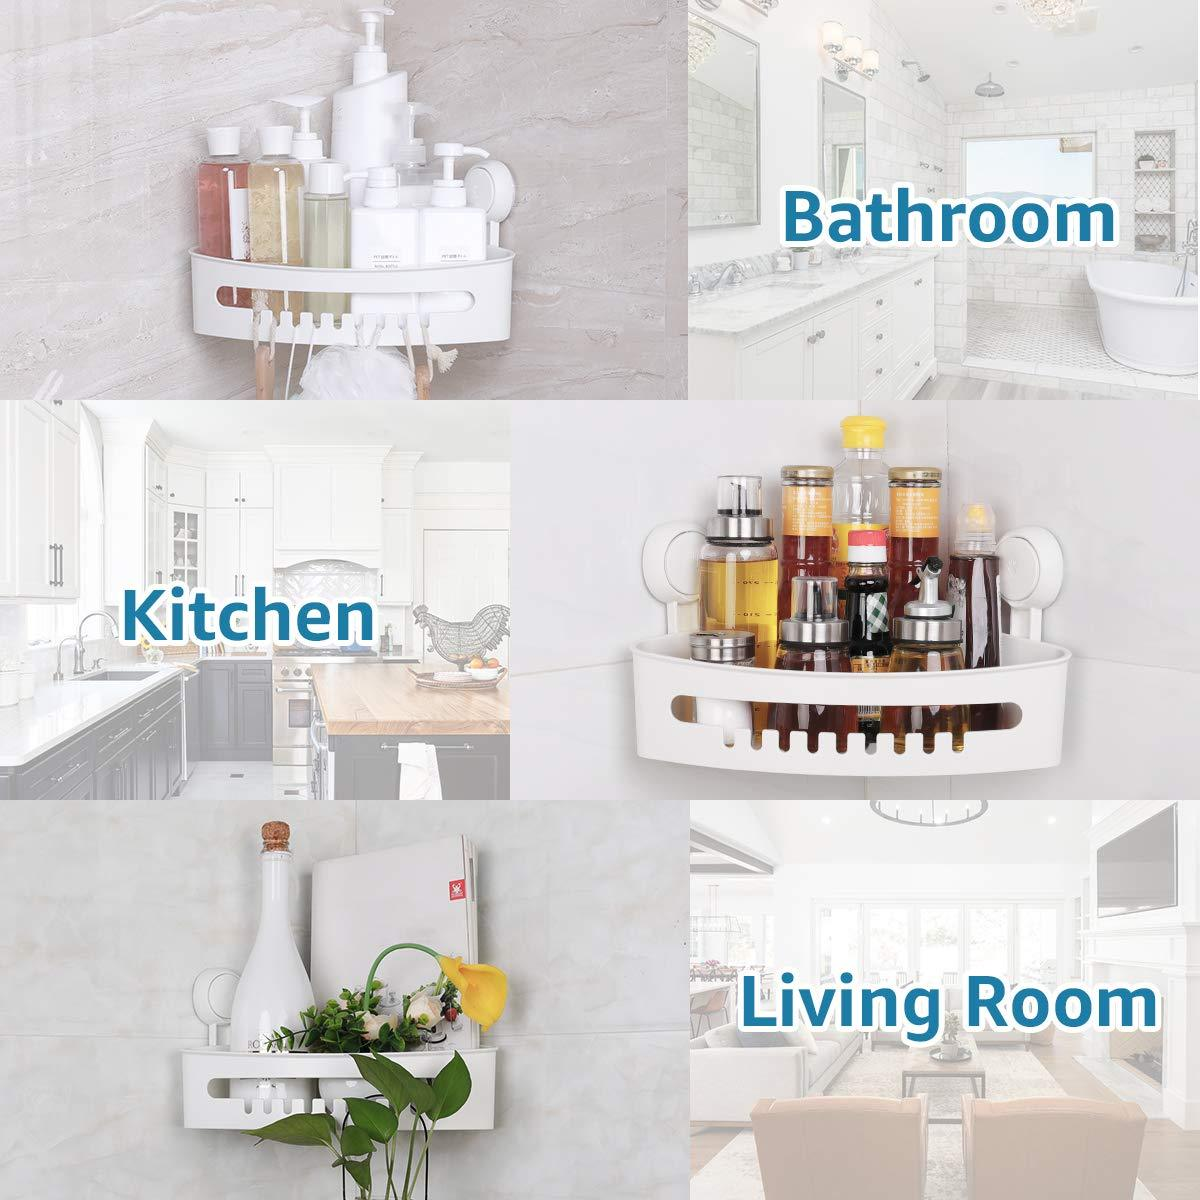 Bathroom Shower Shelf Storage